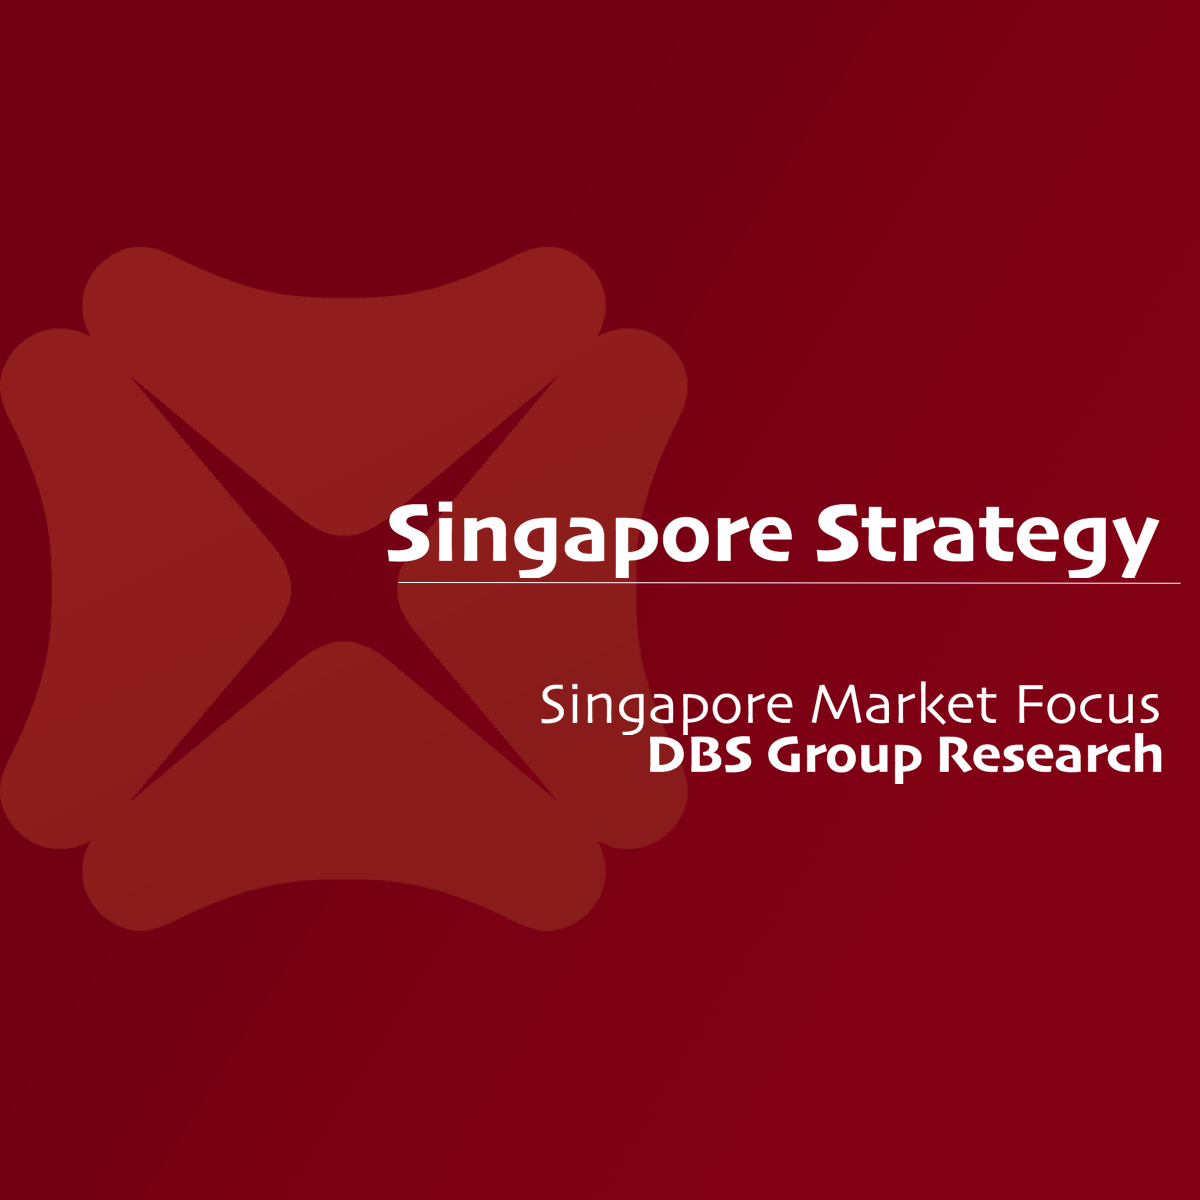 Singapore Market Focus - DBS Vickers 2018-02-14: Opportunity, Not Calamity